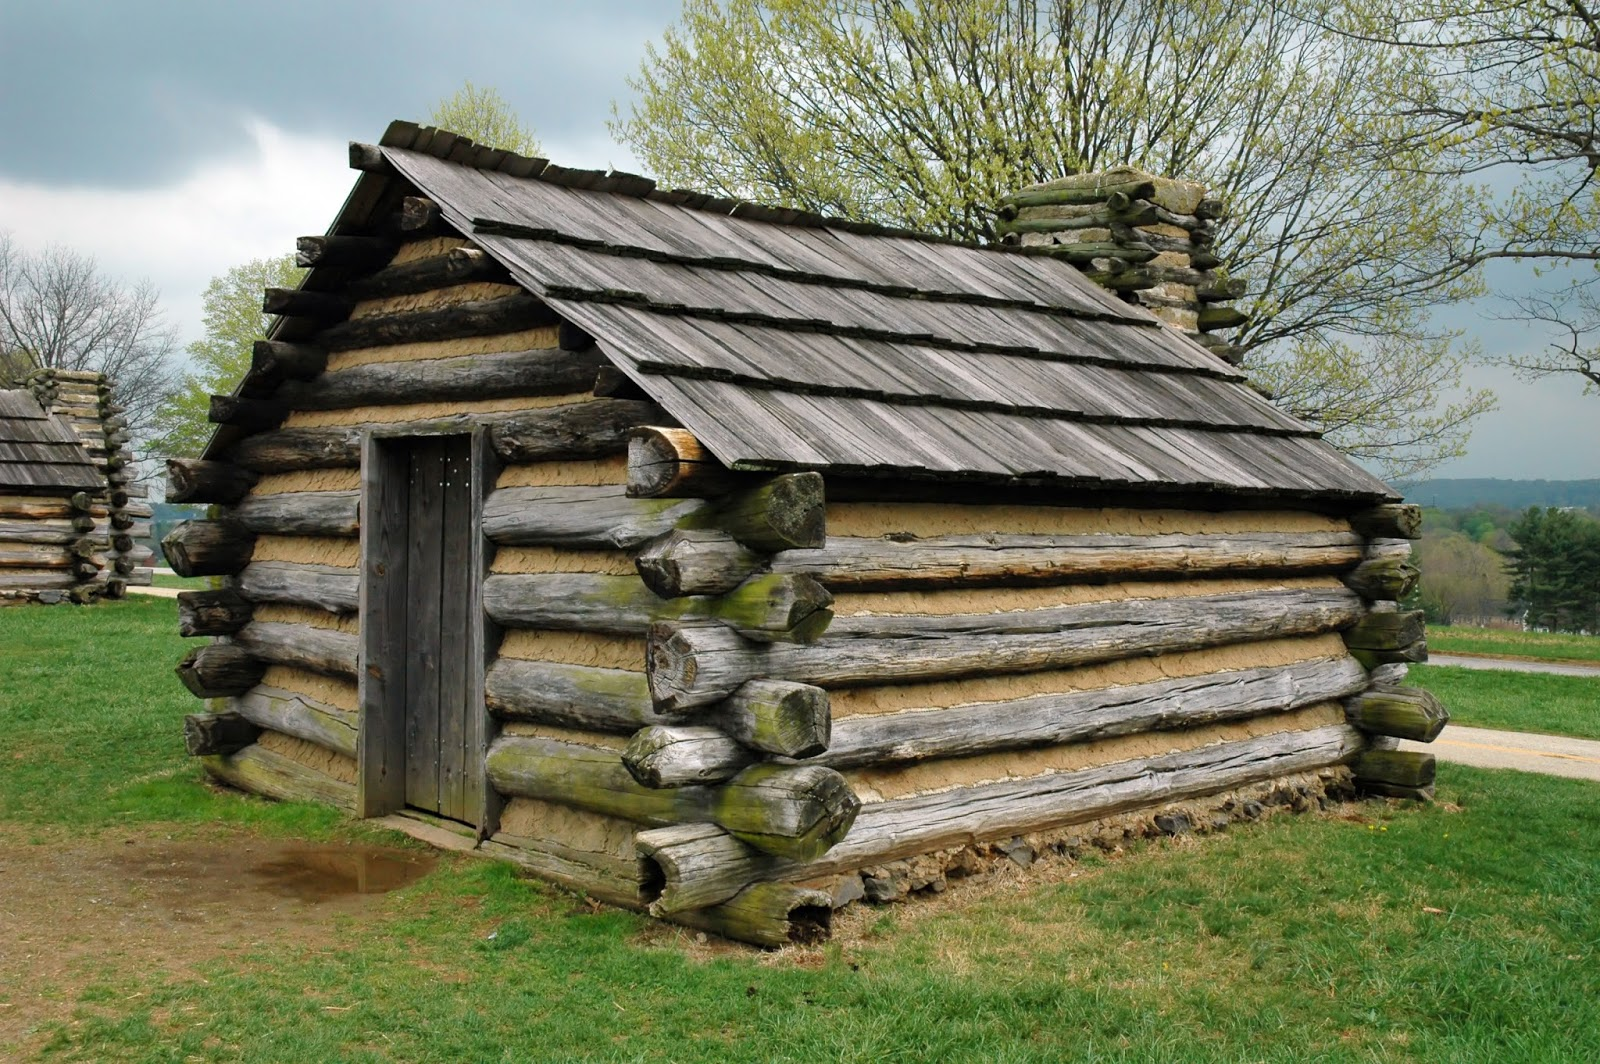 North Park Lincoln >> Old European culture: Log cabin